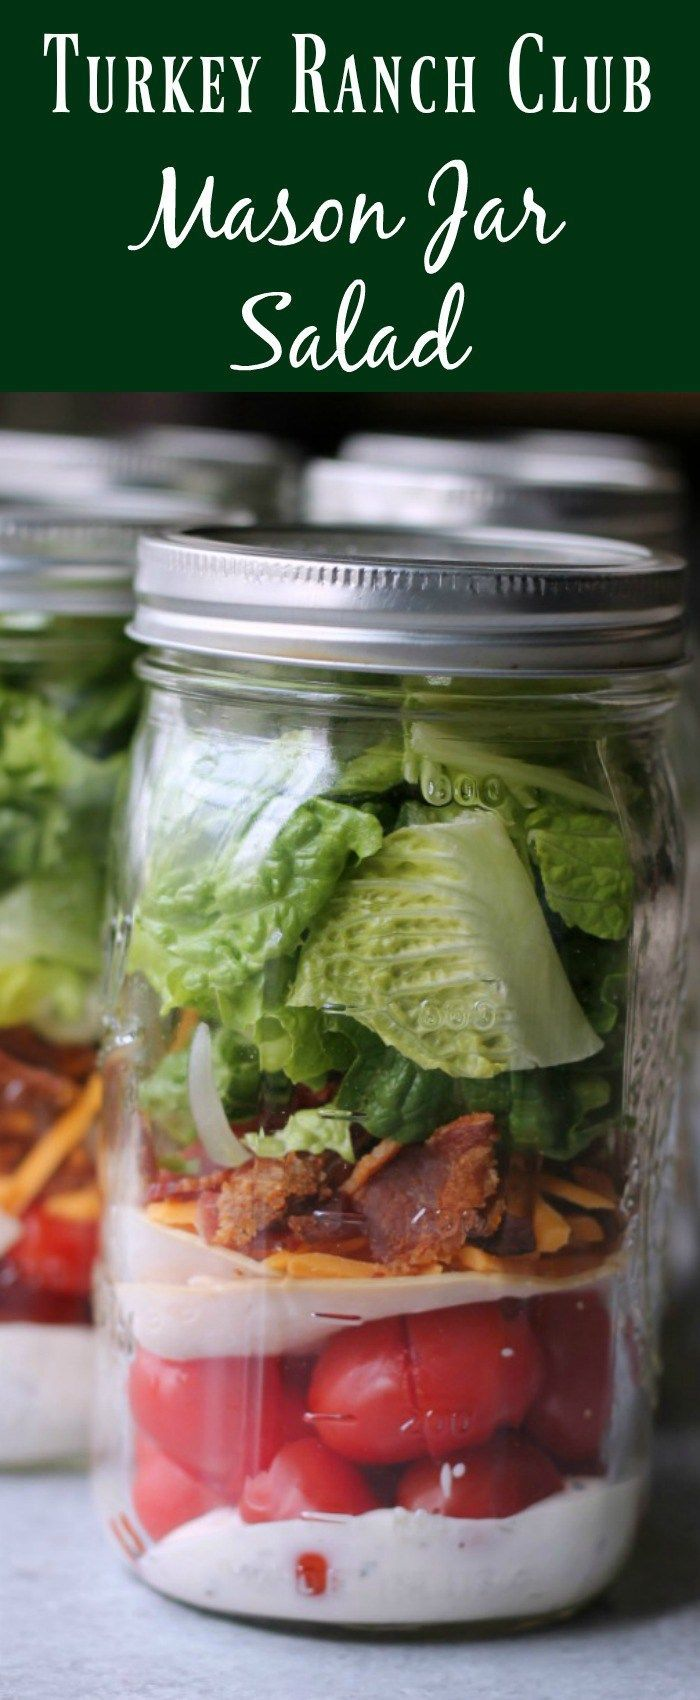 Turkey Ranch Club Mason Jar Salad Healthy